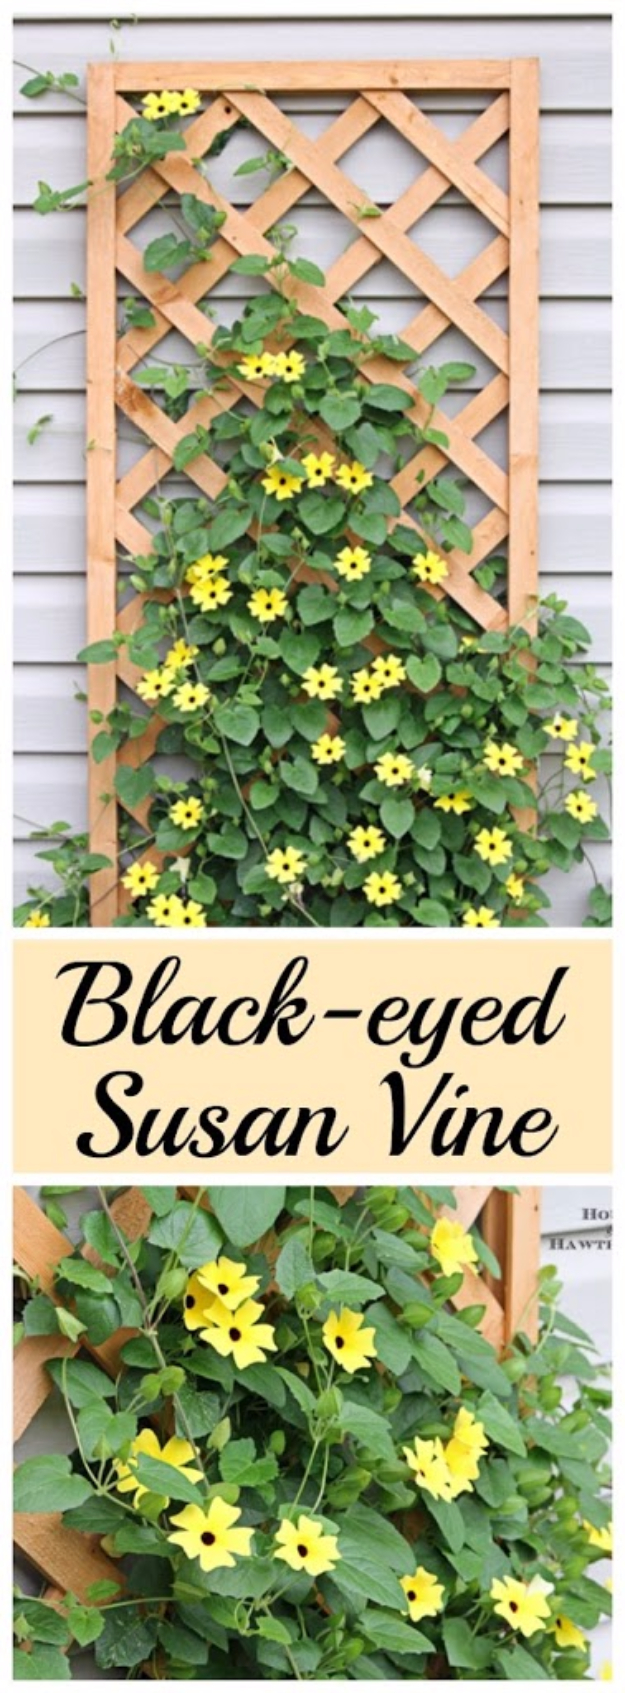 Creative Ways to Increase Curb Appeal on A Budget - Back Eyed Susan Vines - Cheap and Easy Ideas for Upgrading Your Front Porch, Landscaping, Driveways, Garage Doors, Brick and Home Exteriors. Add Window Boxes, House Numbers